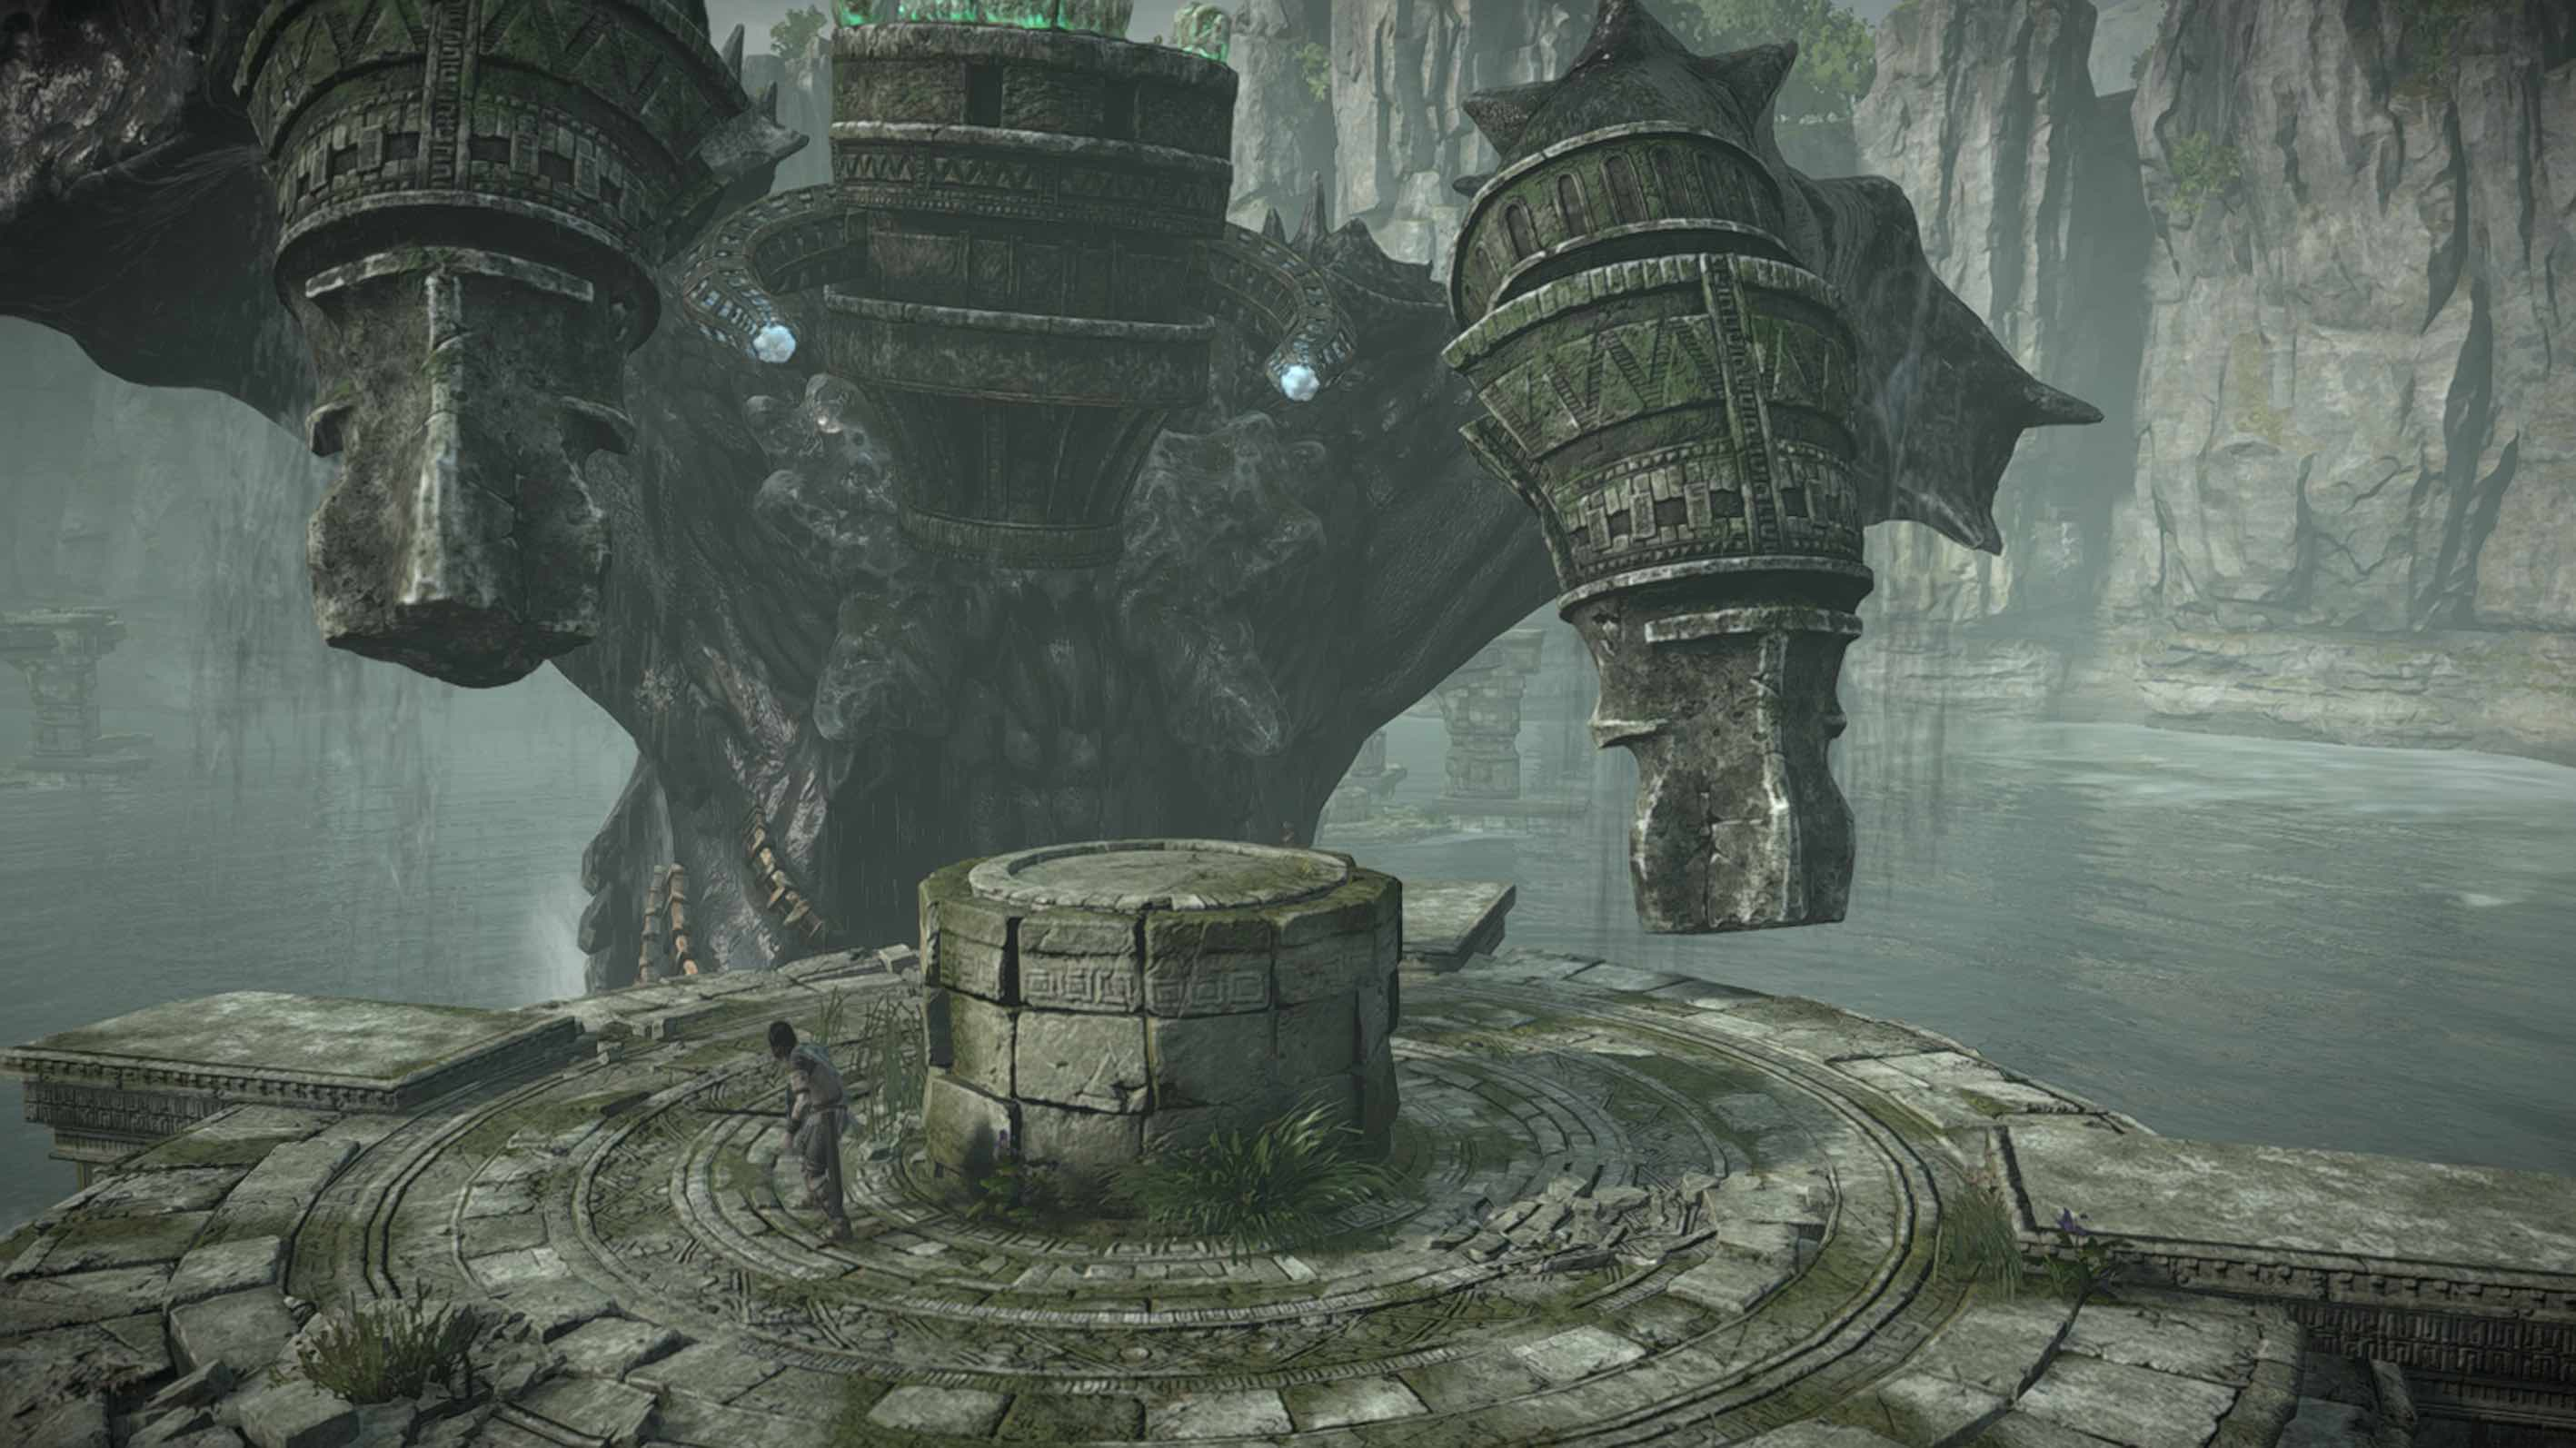 Shadow_of_the_Colossus_Coloso_12_5